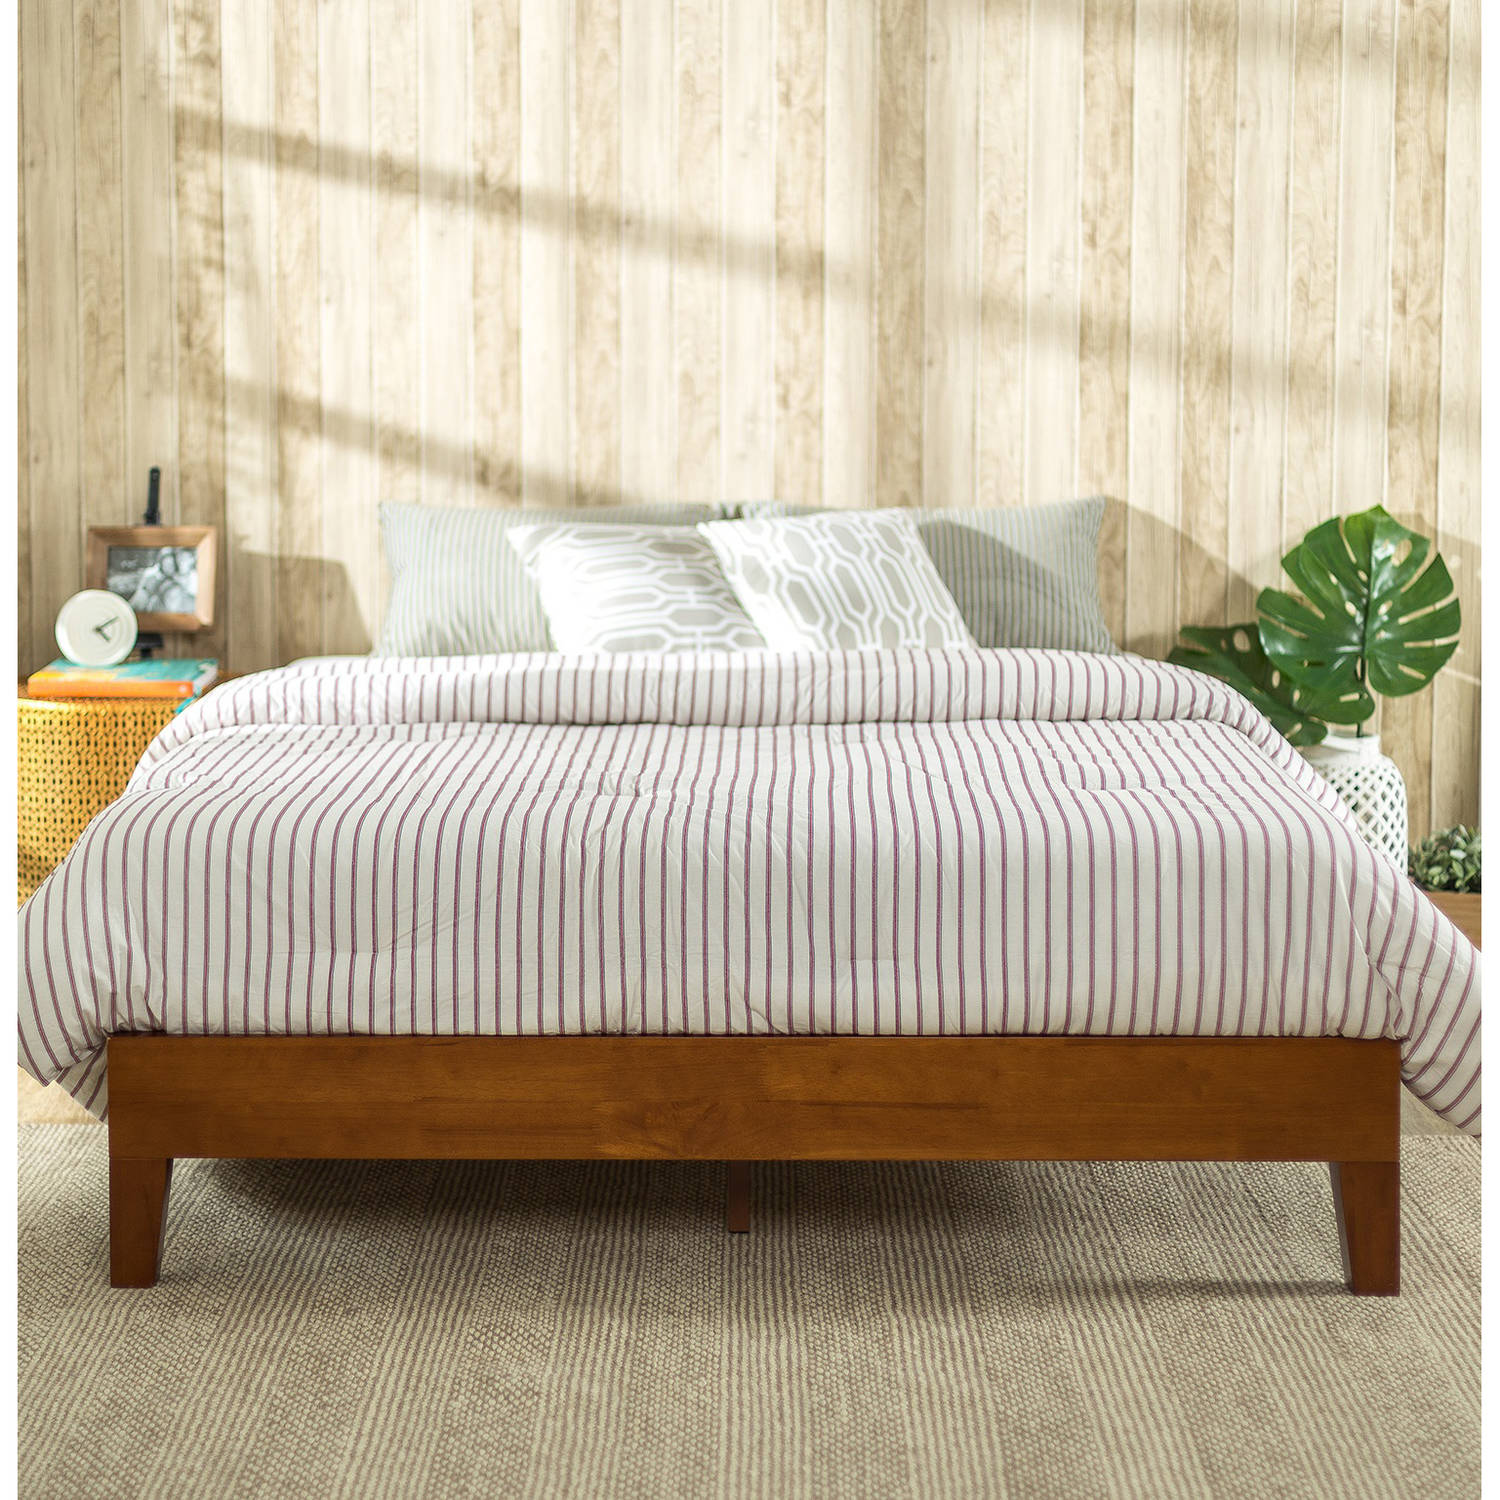 zinus deluxe solid wood platform bed cherry